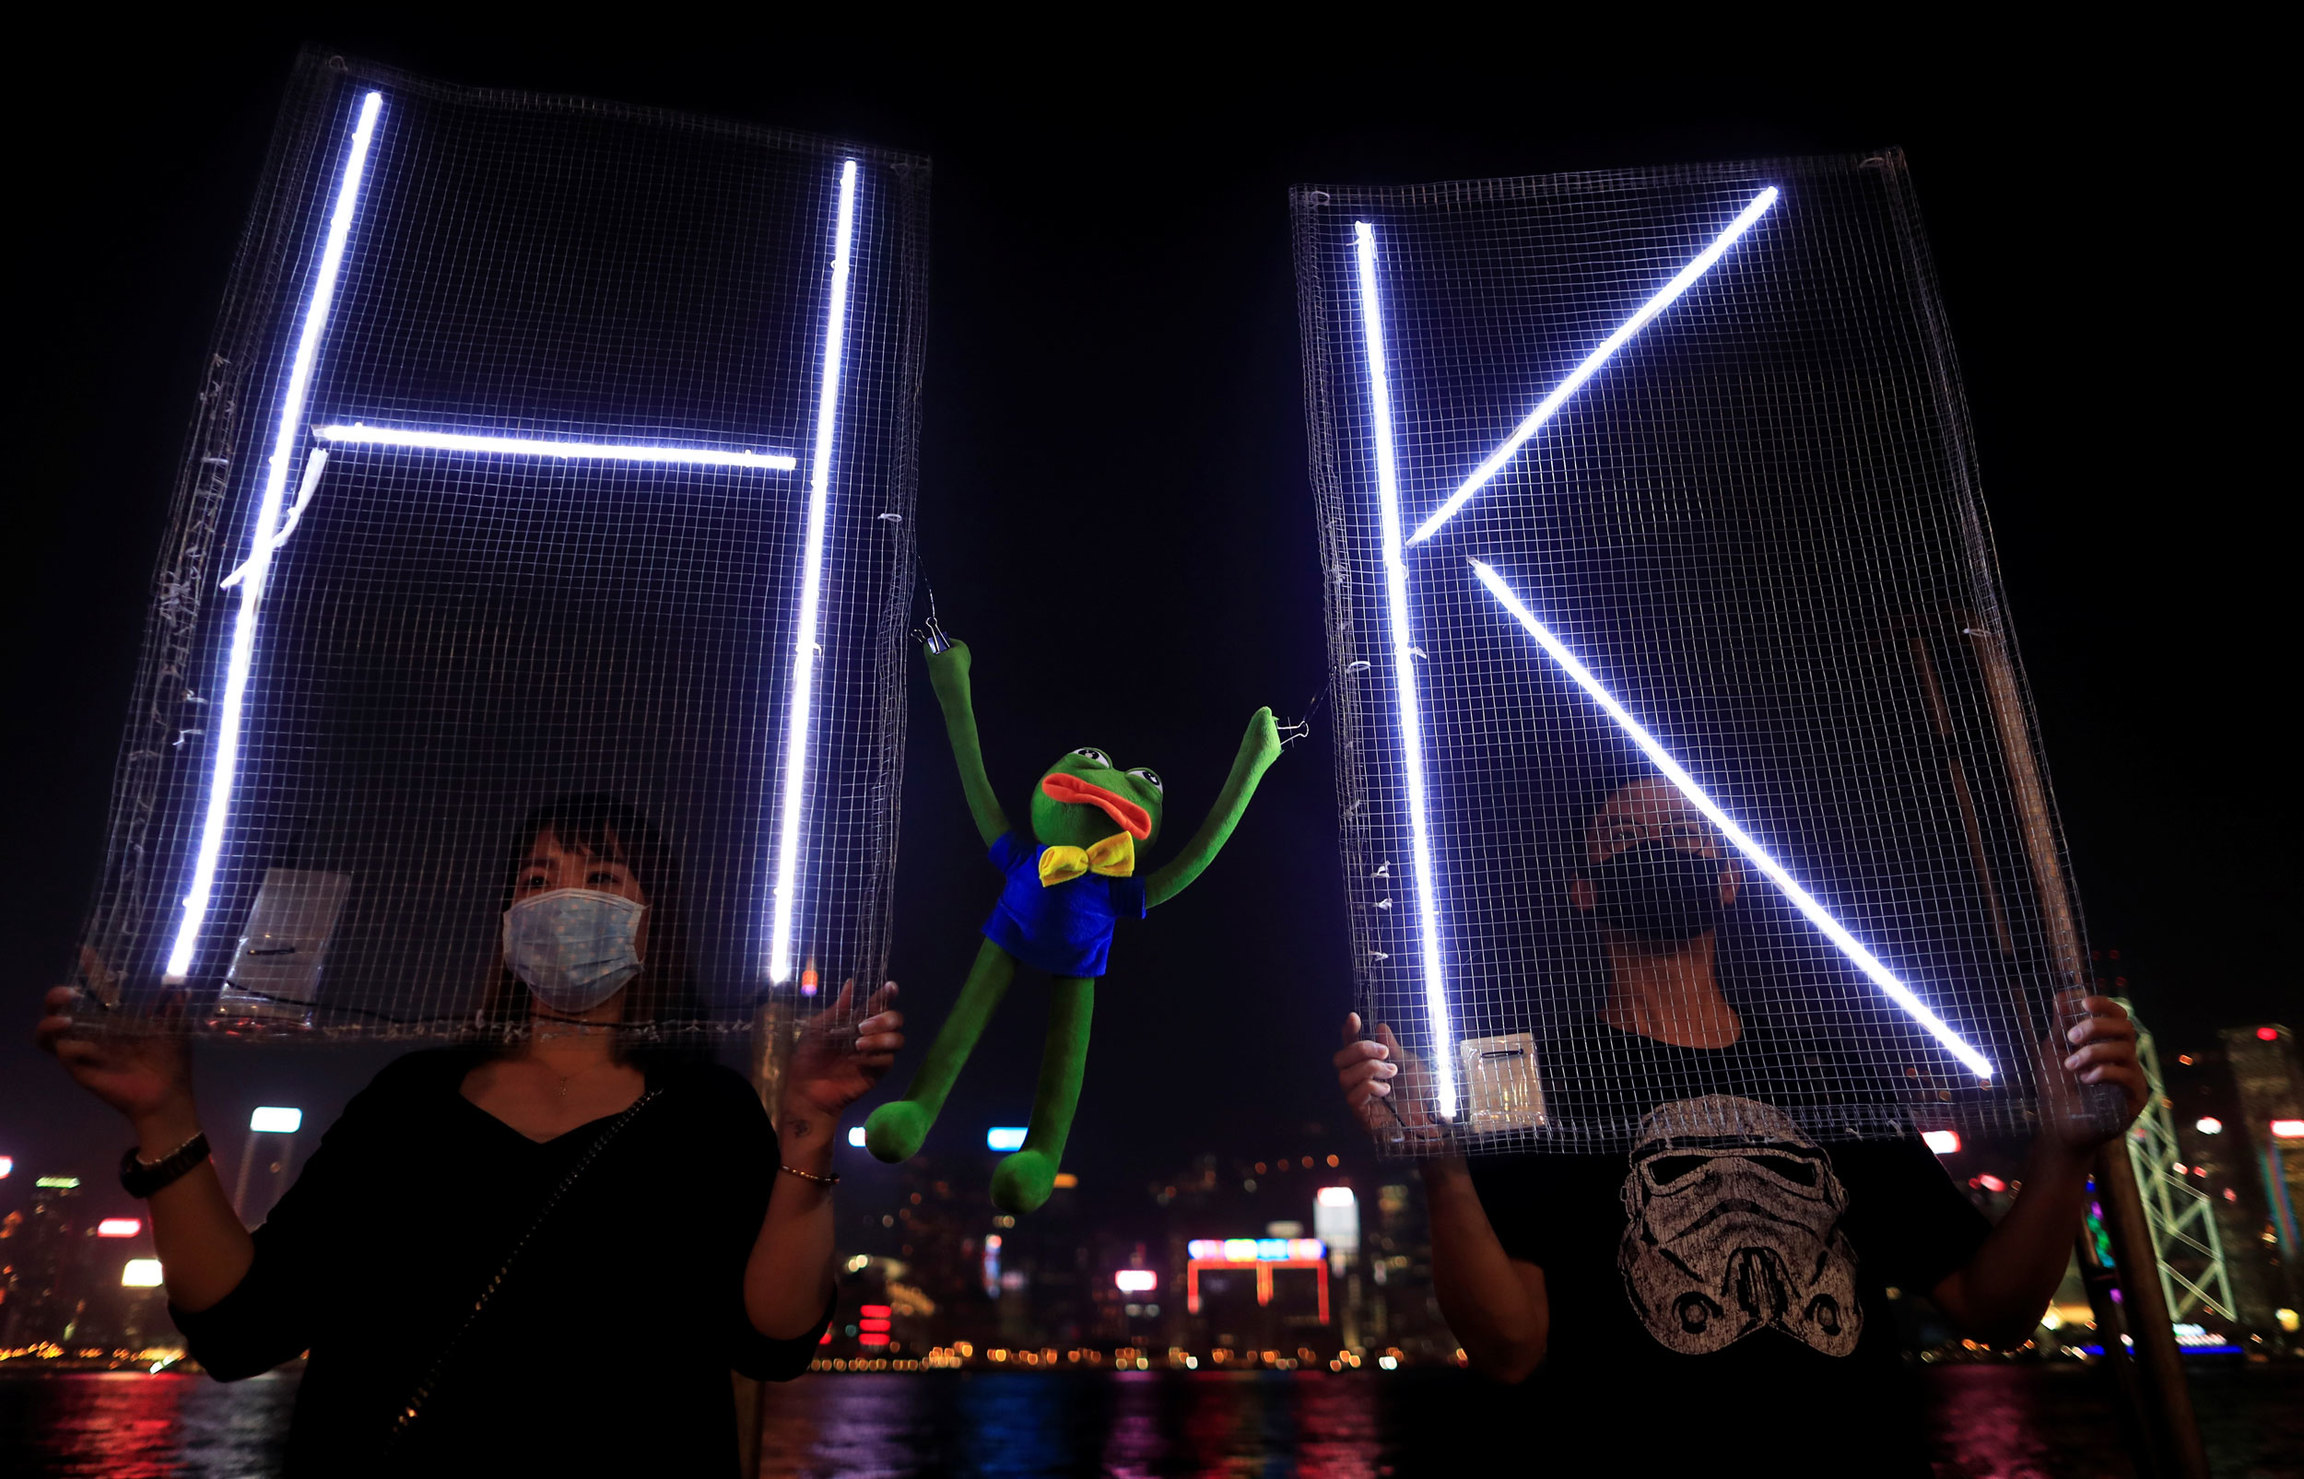 Two people are shown holding signs with electrified letters H and K with a Pepe the Frog plush toy inbetween.